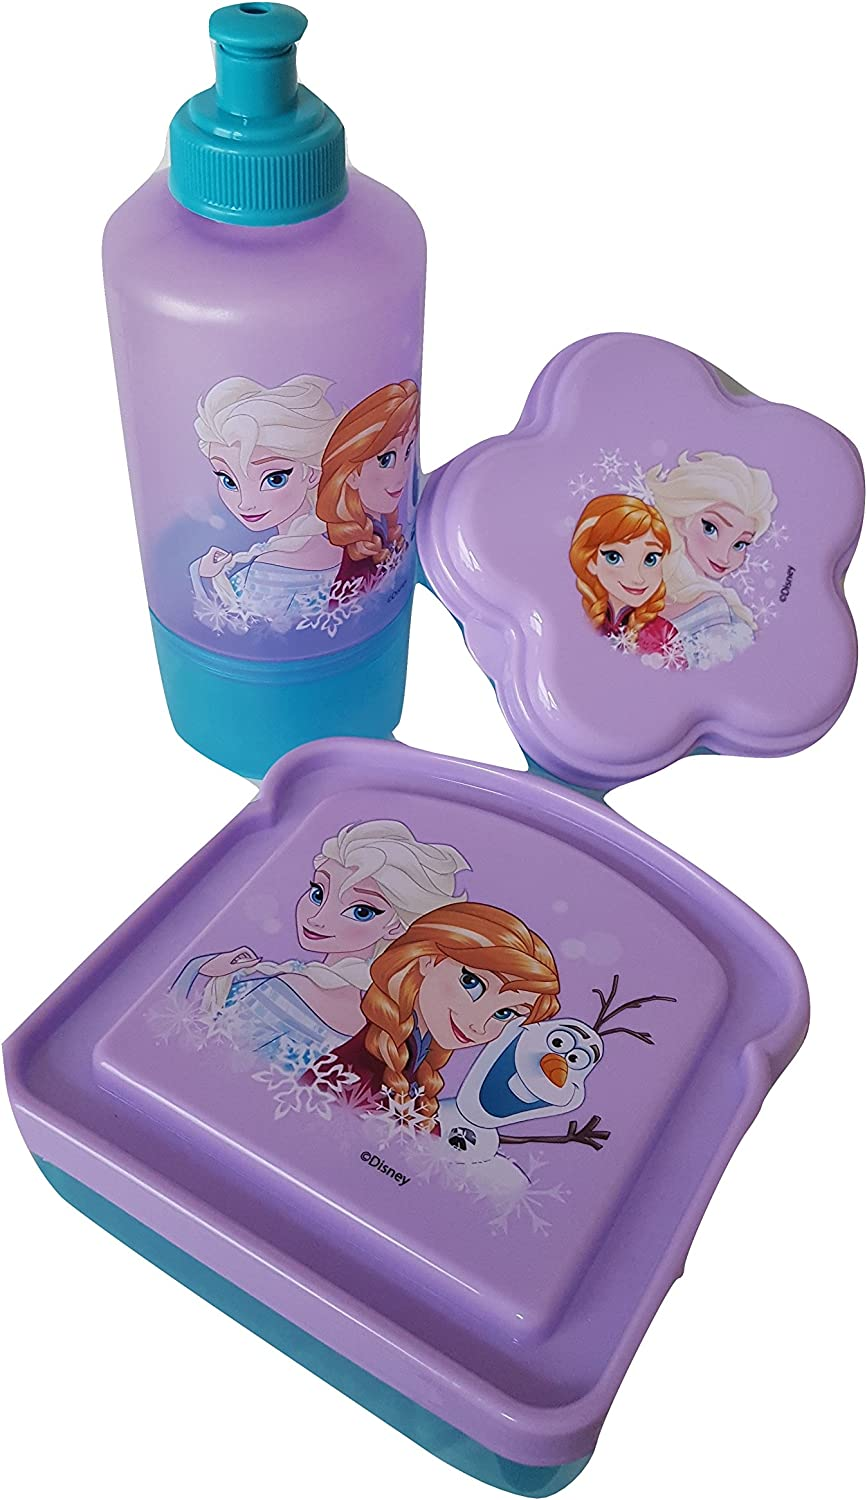 Frozen BPA Free 1 Pull-Top Jugs with Attached Snack Containers, 1 Sandwich Box, 1 Snack Container by Zak Designs Bundle Set